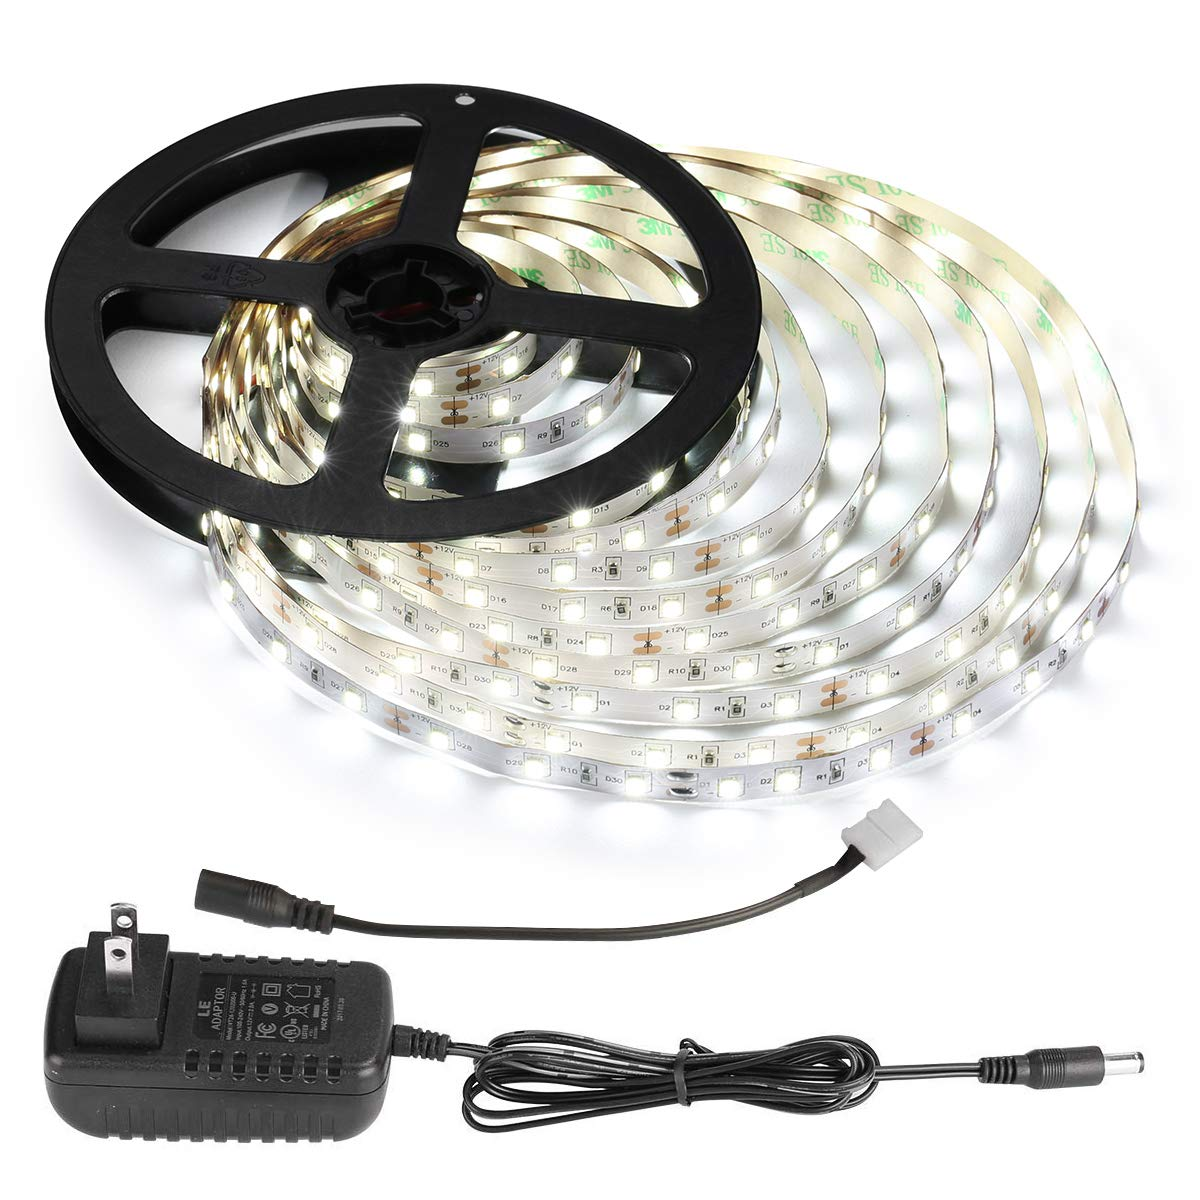 LE 12V LED Light Strip Kit, Flexible, 300 LEDs SMD 2835, 16.4ft Tape Light Kit for Home, Kitchen, Party, Under Cabinet and More, Power Adapter Included, Daylight White